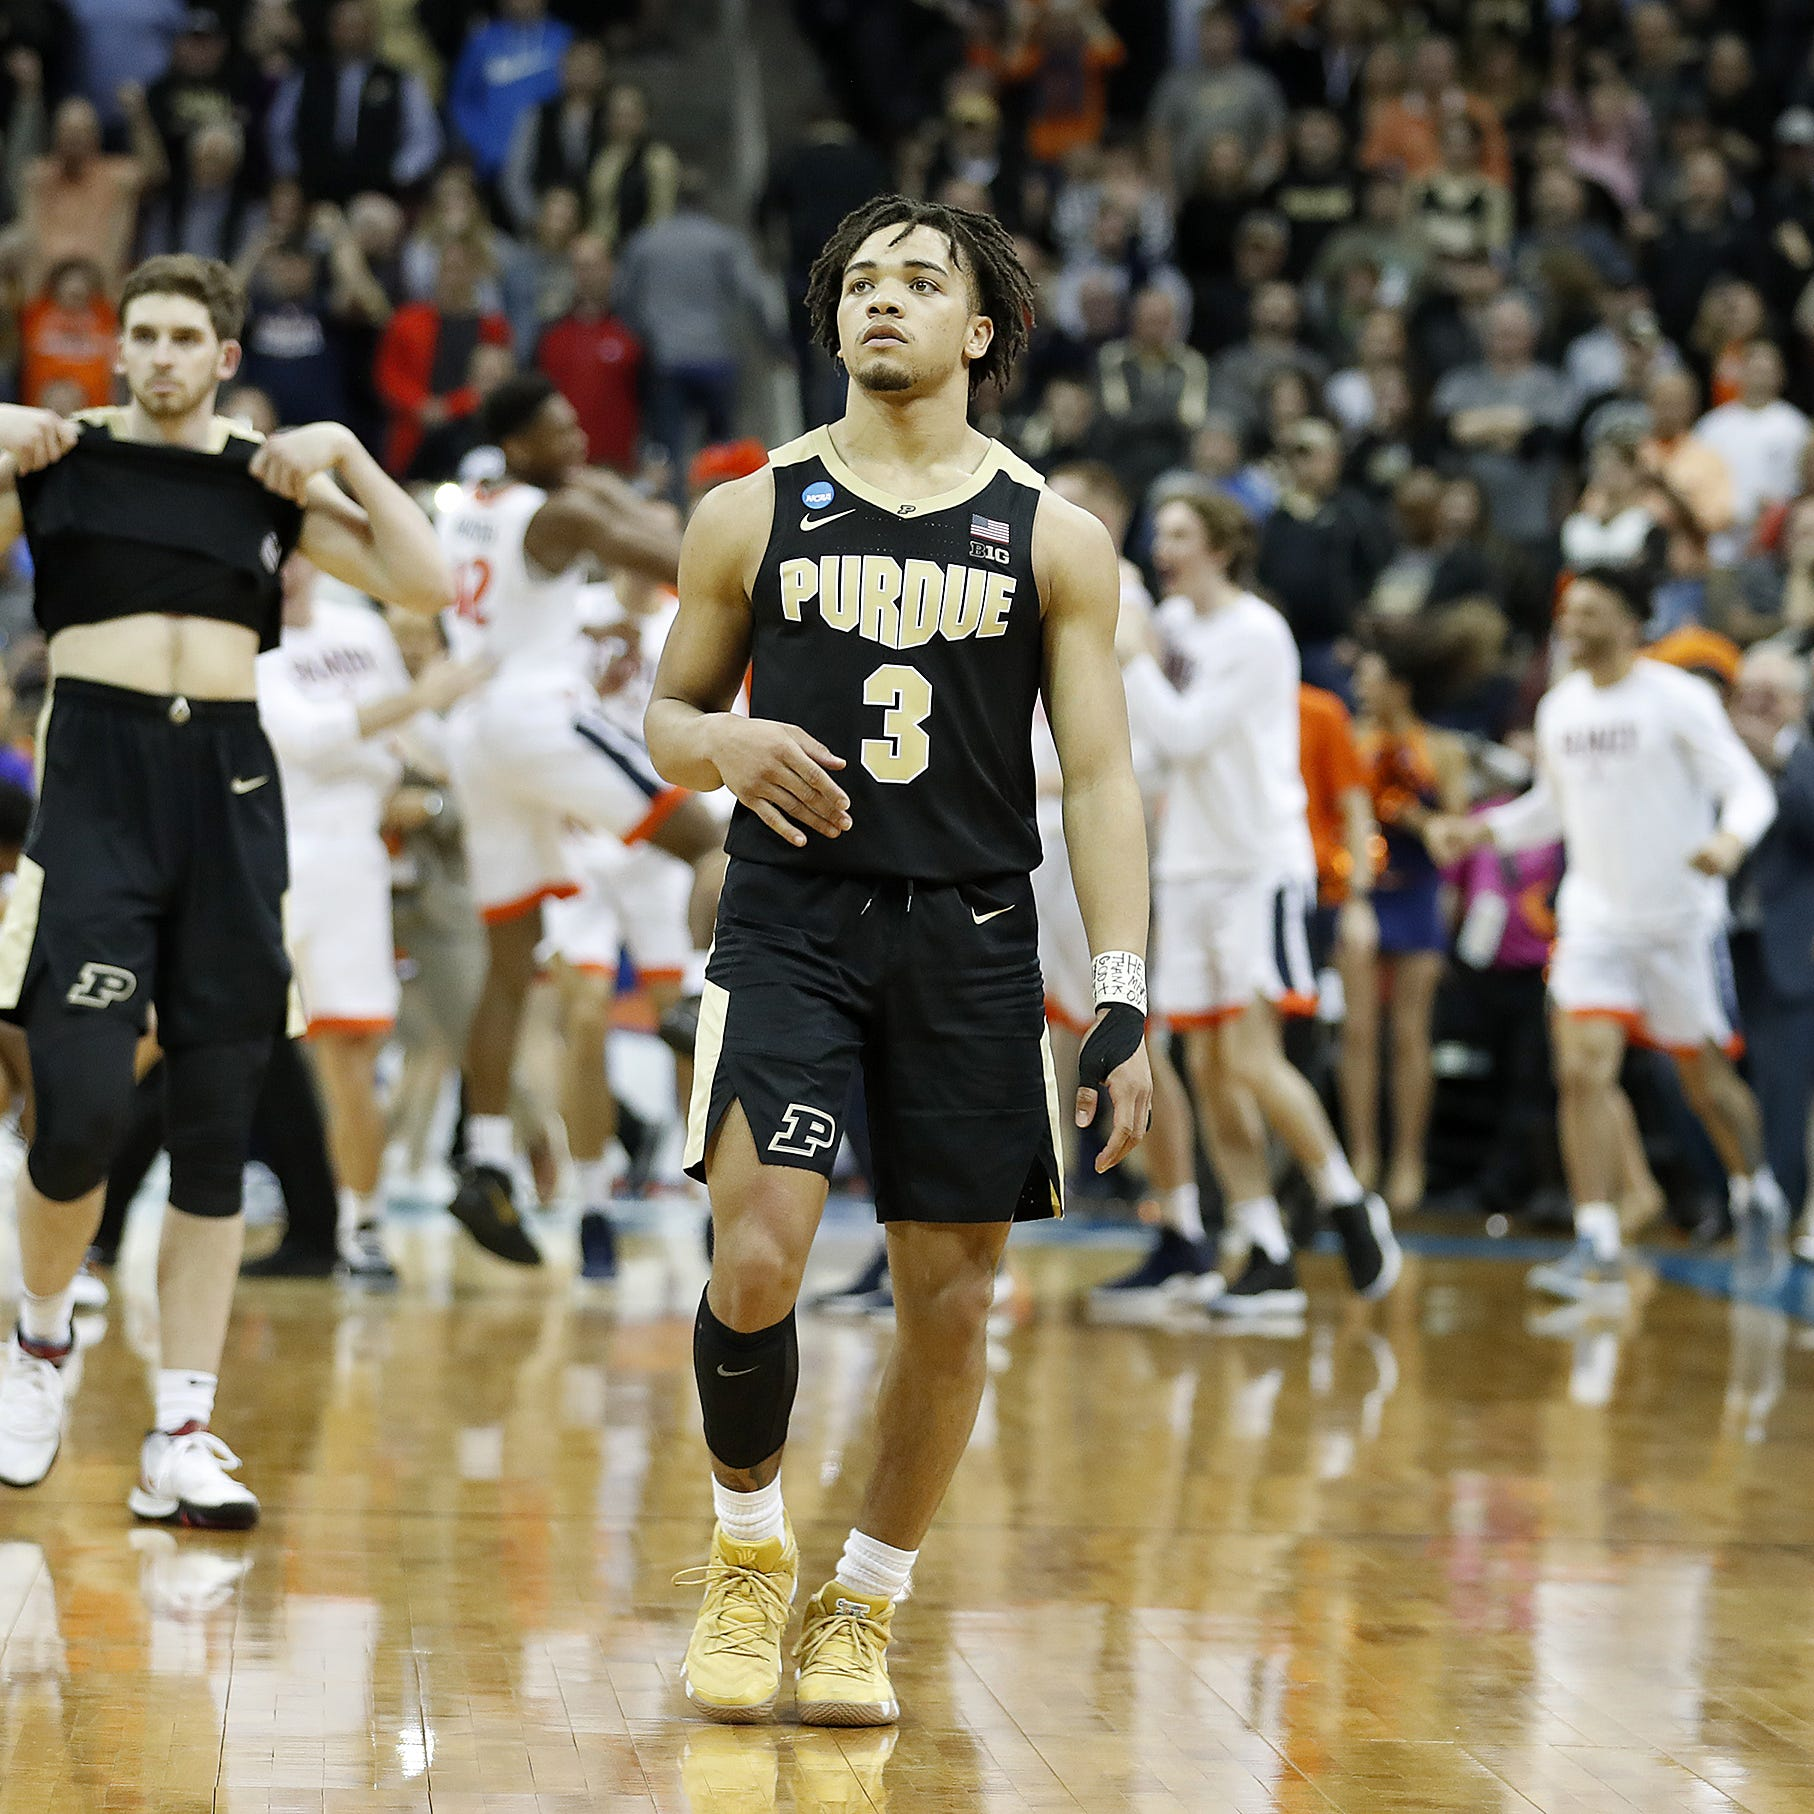 Doyel: Purdue's unlikely road to Final Four comes to cruel end